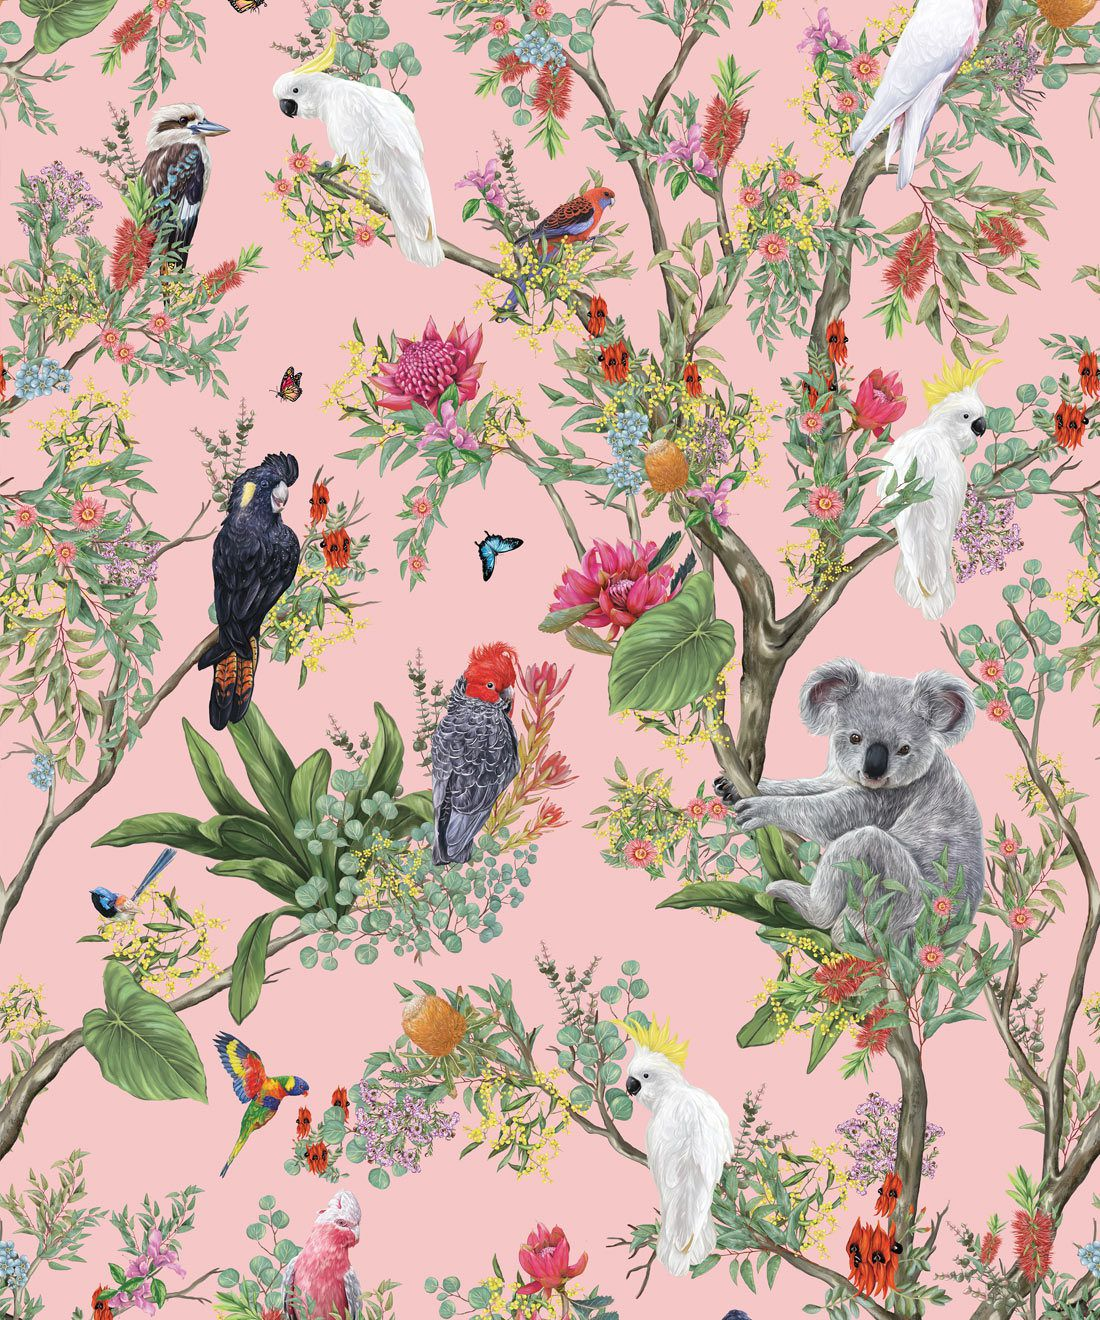 Australia Wallpaper • Cockatoos, Koalas, Parrots, Finches • Milton & King Australia • Coral Wallpaper Swatch